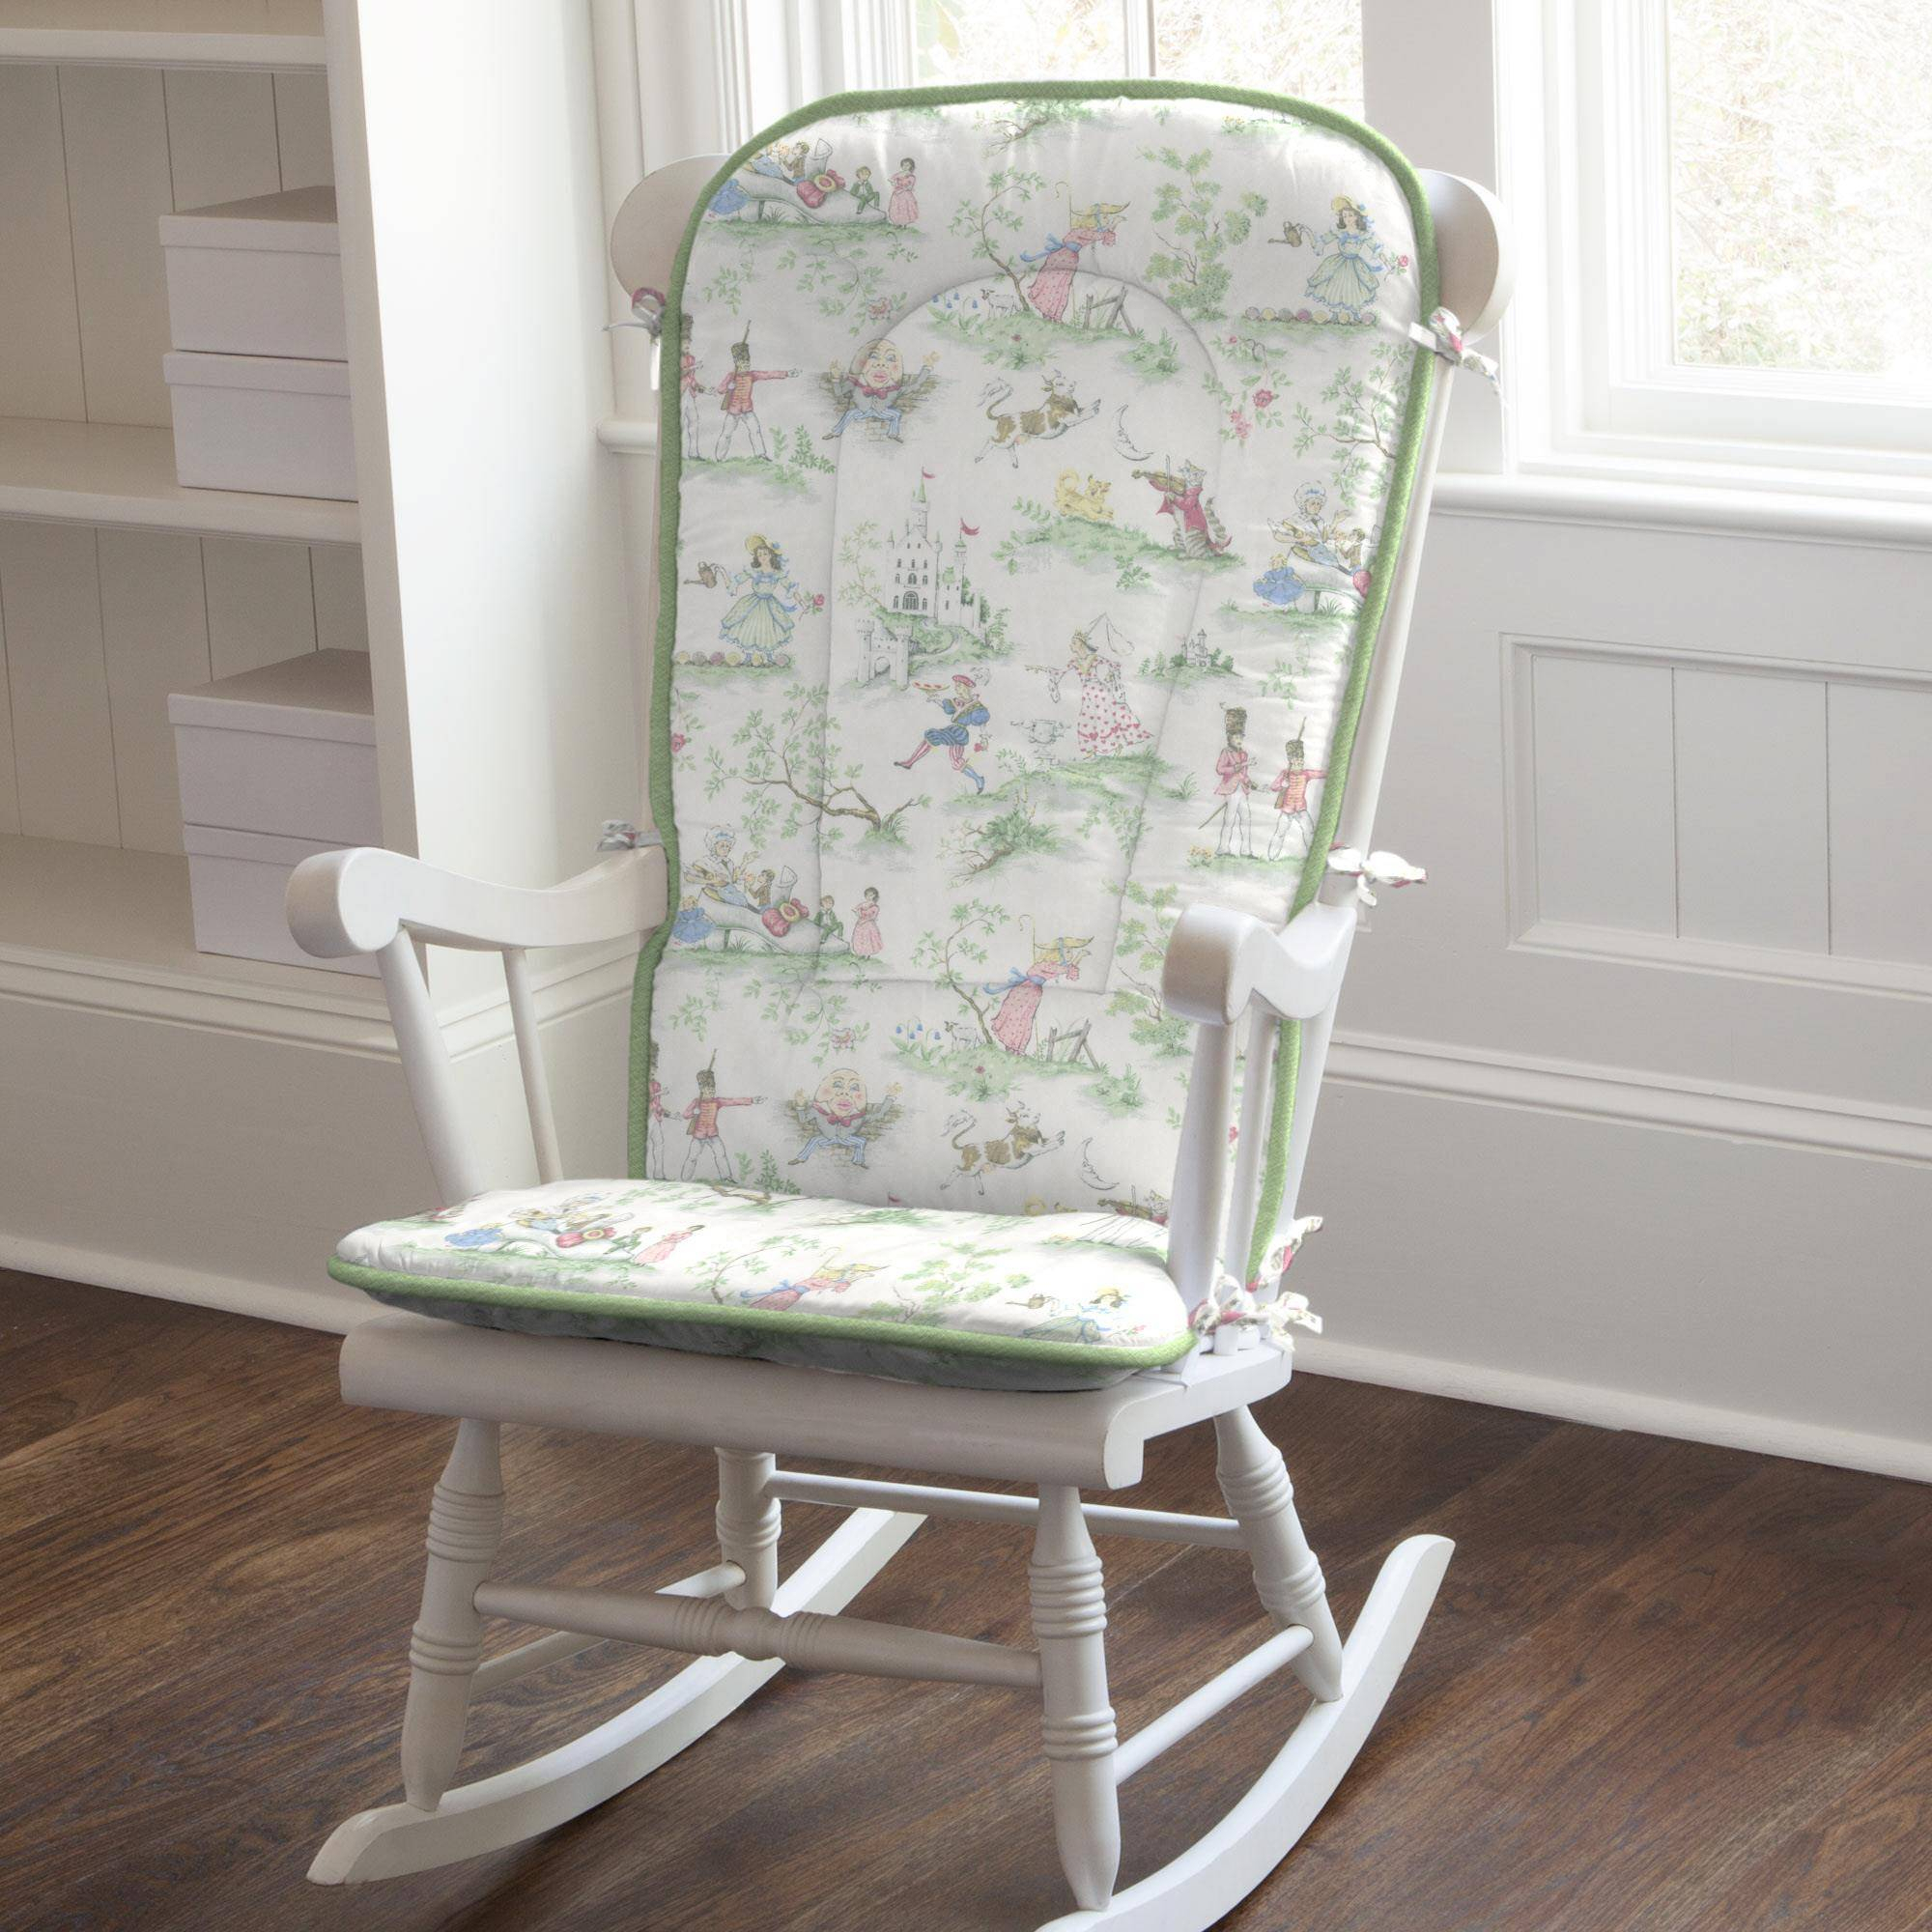 Rocker For Baby Room Furniture Inspiring Rocking Chair Best Intended For Wooden Baby Nursery Rocking Chairs (#16 of 20)